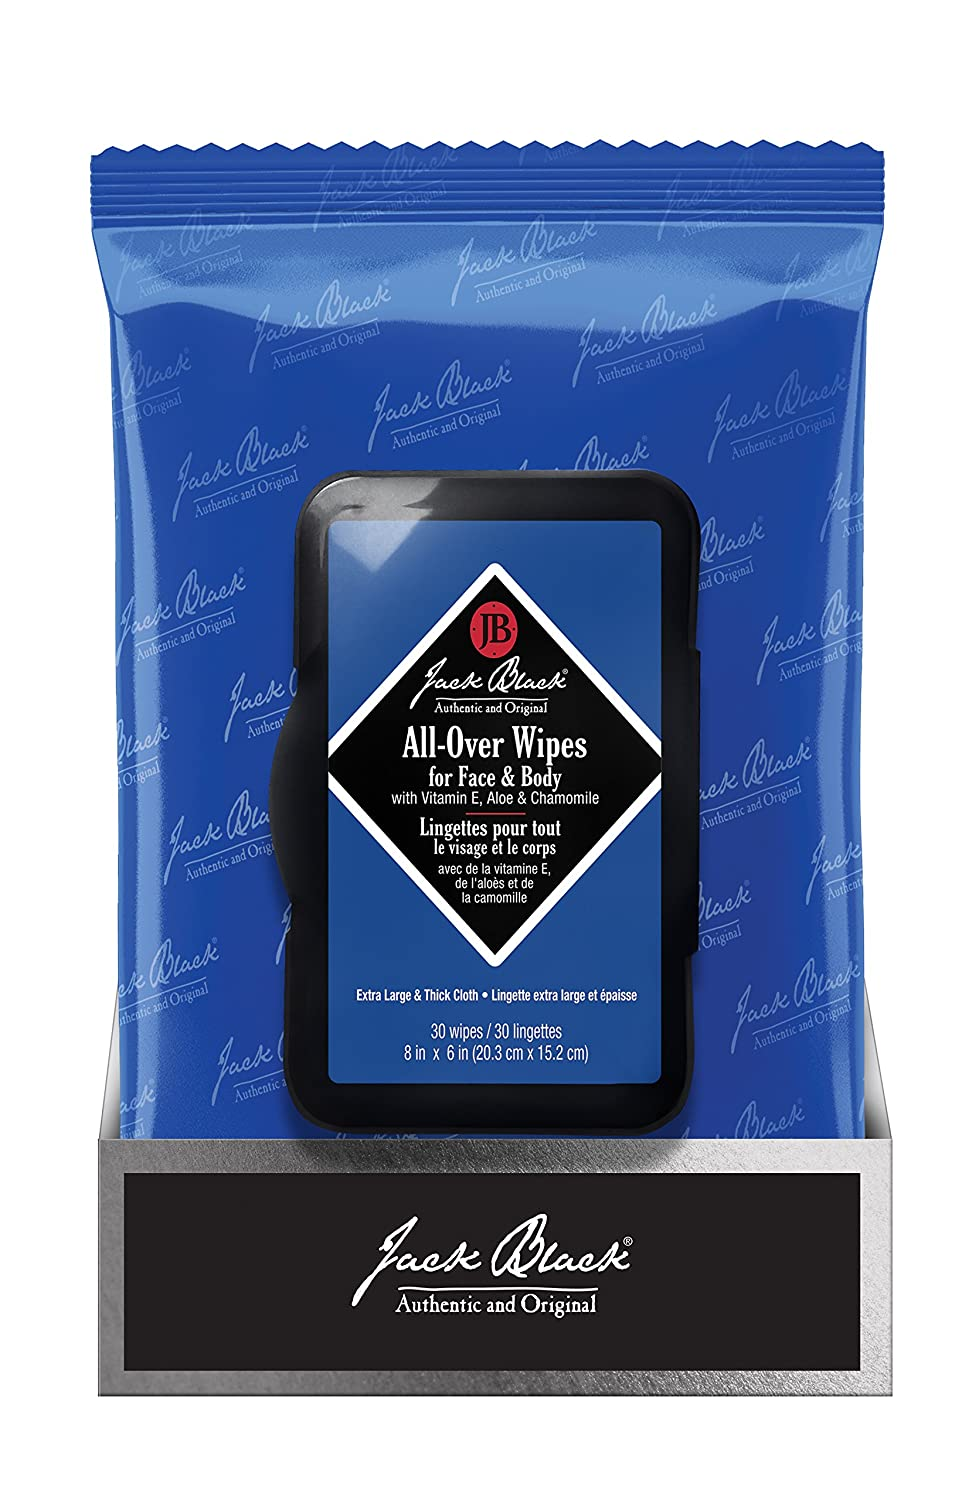 All-Over Wipes for Face & Body (30 towelettes) Jack Black